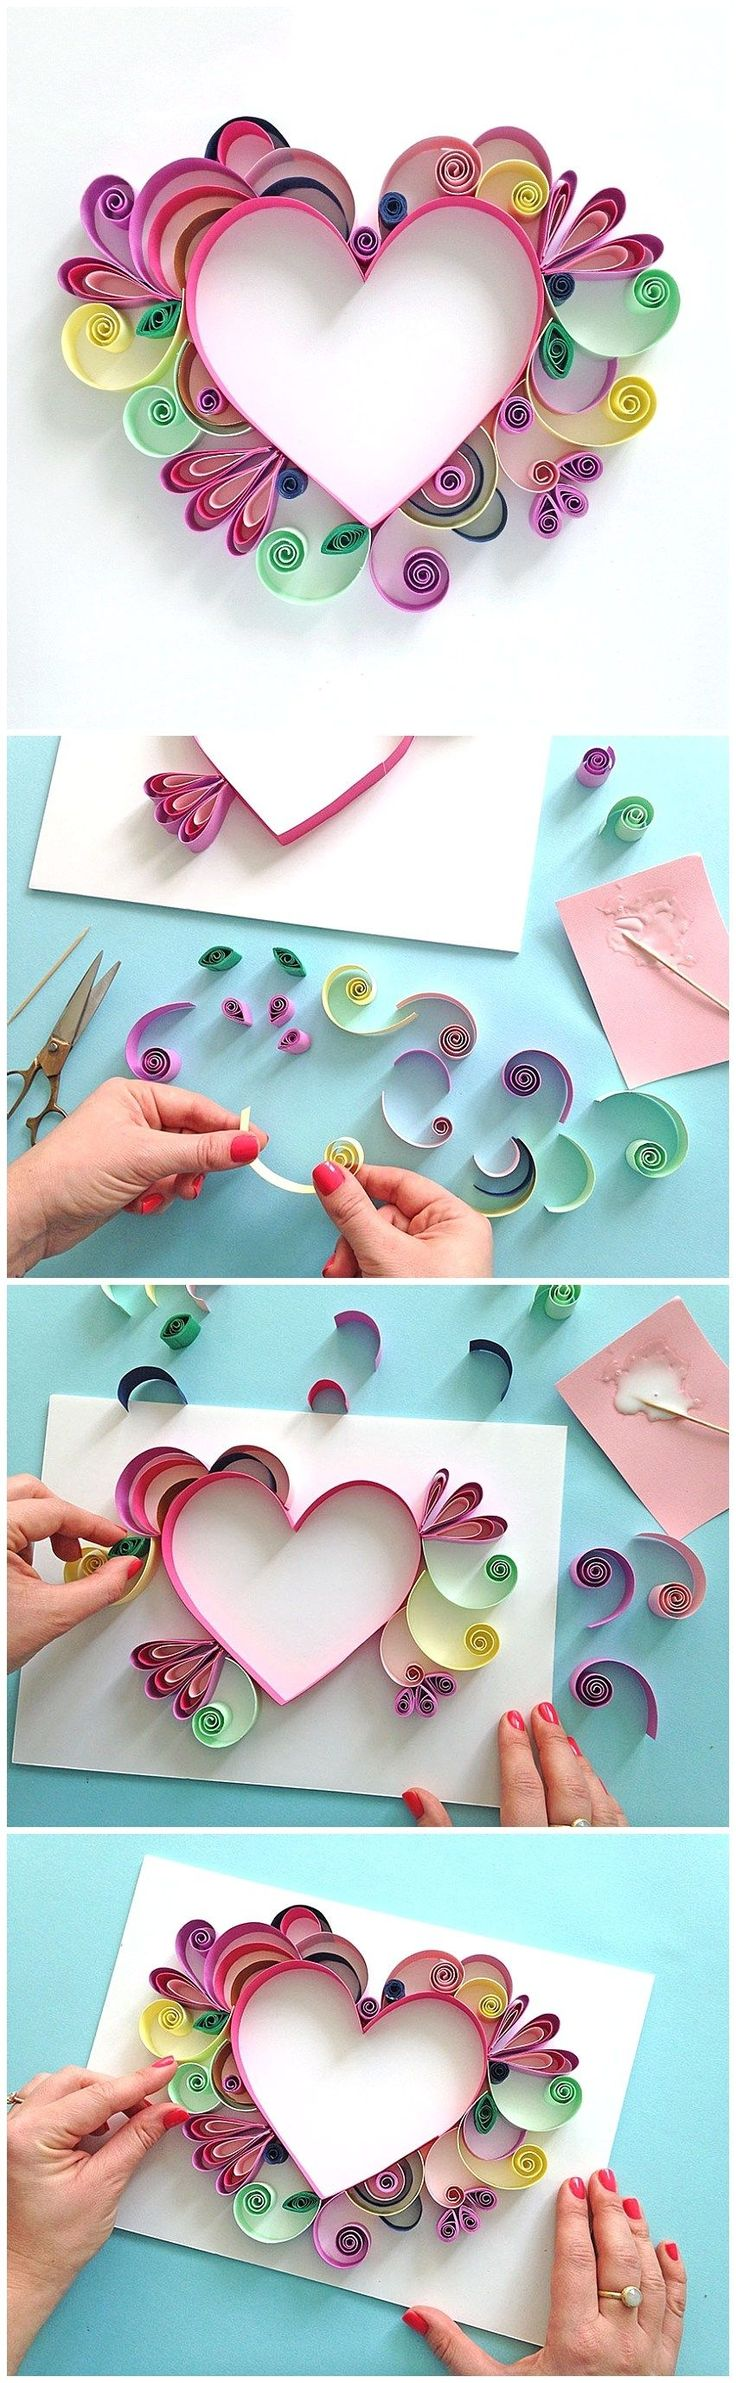 Learn How to Quill a darling Heart Shaped Mother's Day Paper Craft Gift Idea via Paper Chase - Moms and Grandmas will love these pretty handmade works of art! The BEST Easy DIY Mother's Day Gifts and Treats Ideas - Holiday Craft Activity Projects, Free Pr